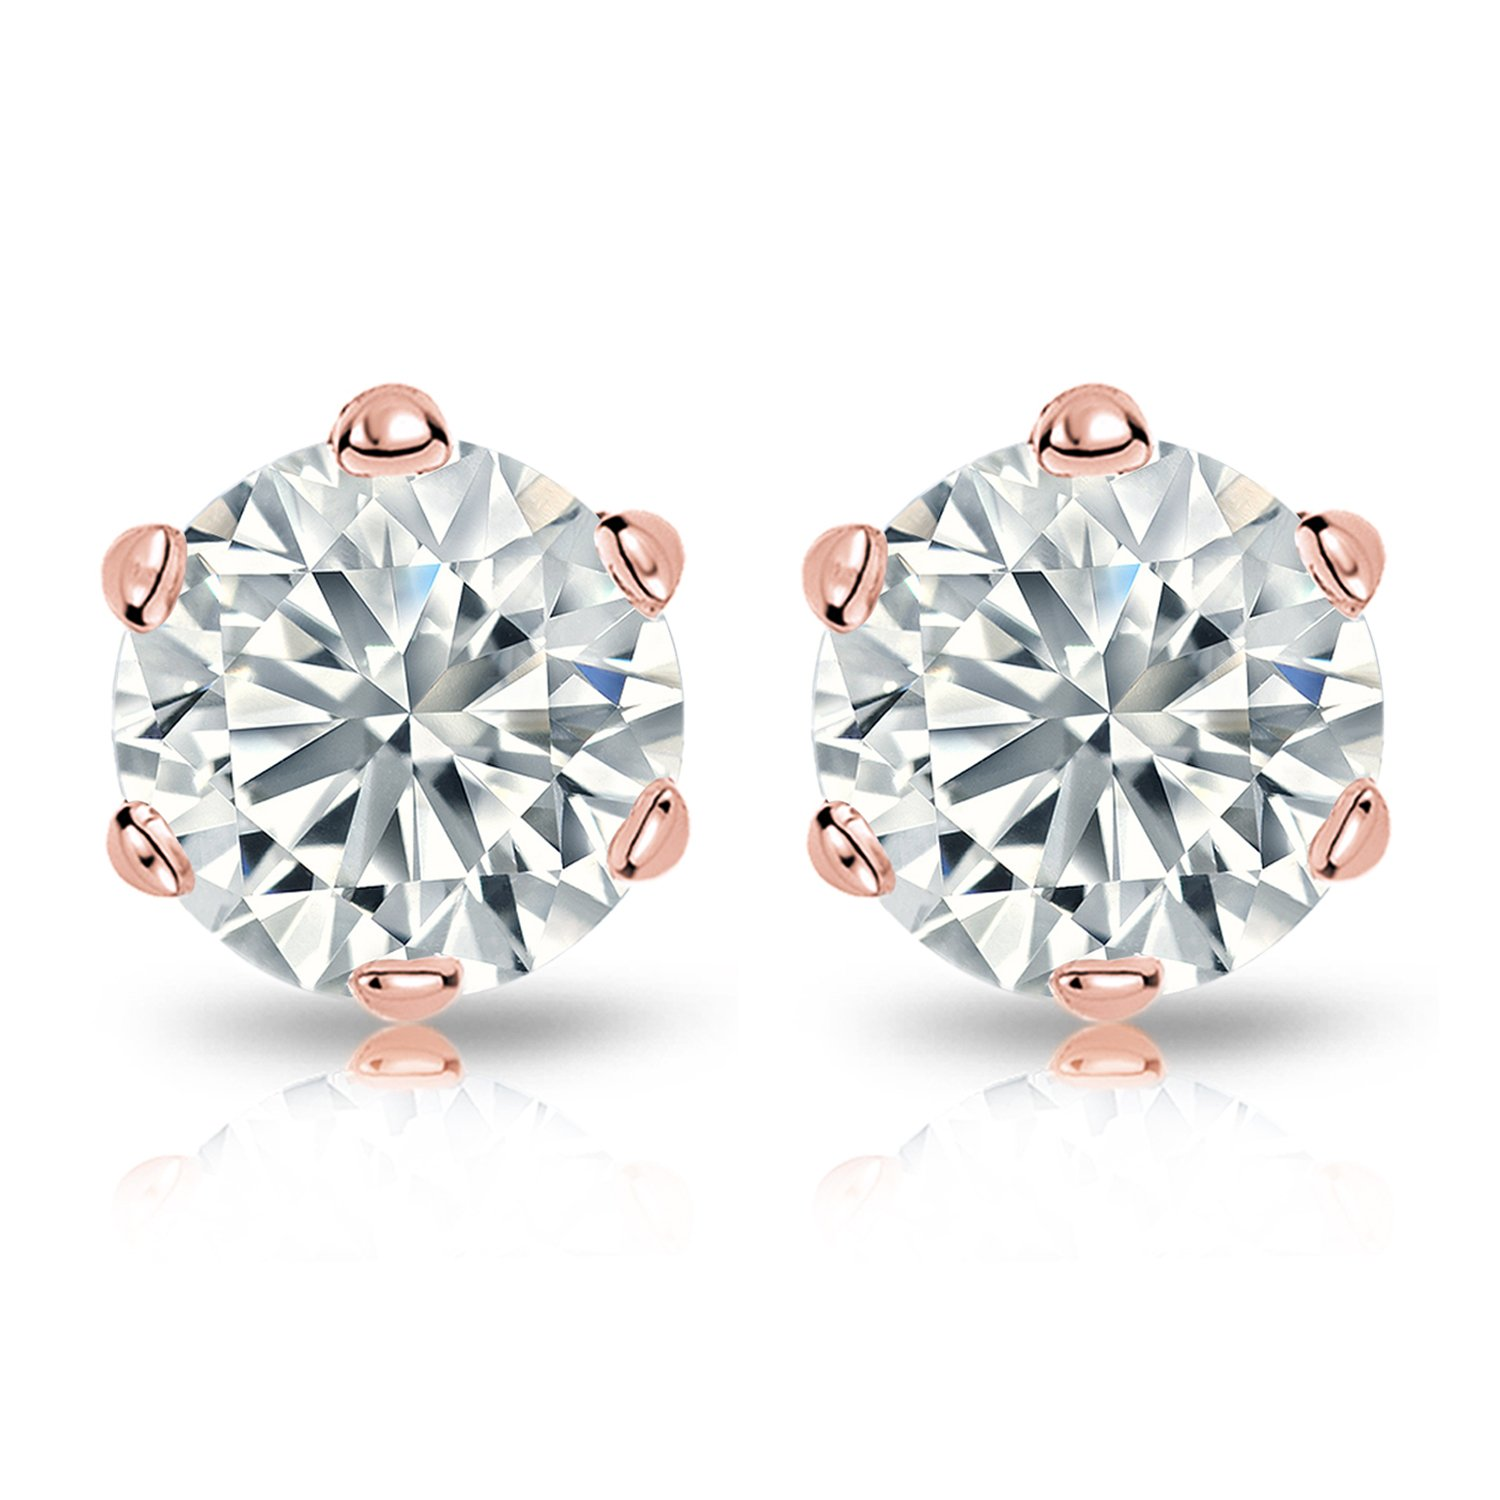 14k Rose Gold Mens Round Diamond Simulant CZ Stud Earrings 6-Prong 1//2-2cttw,Excellent Quality